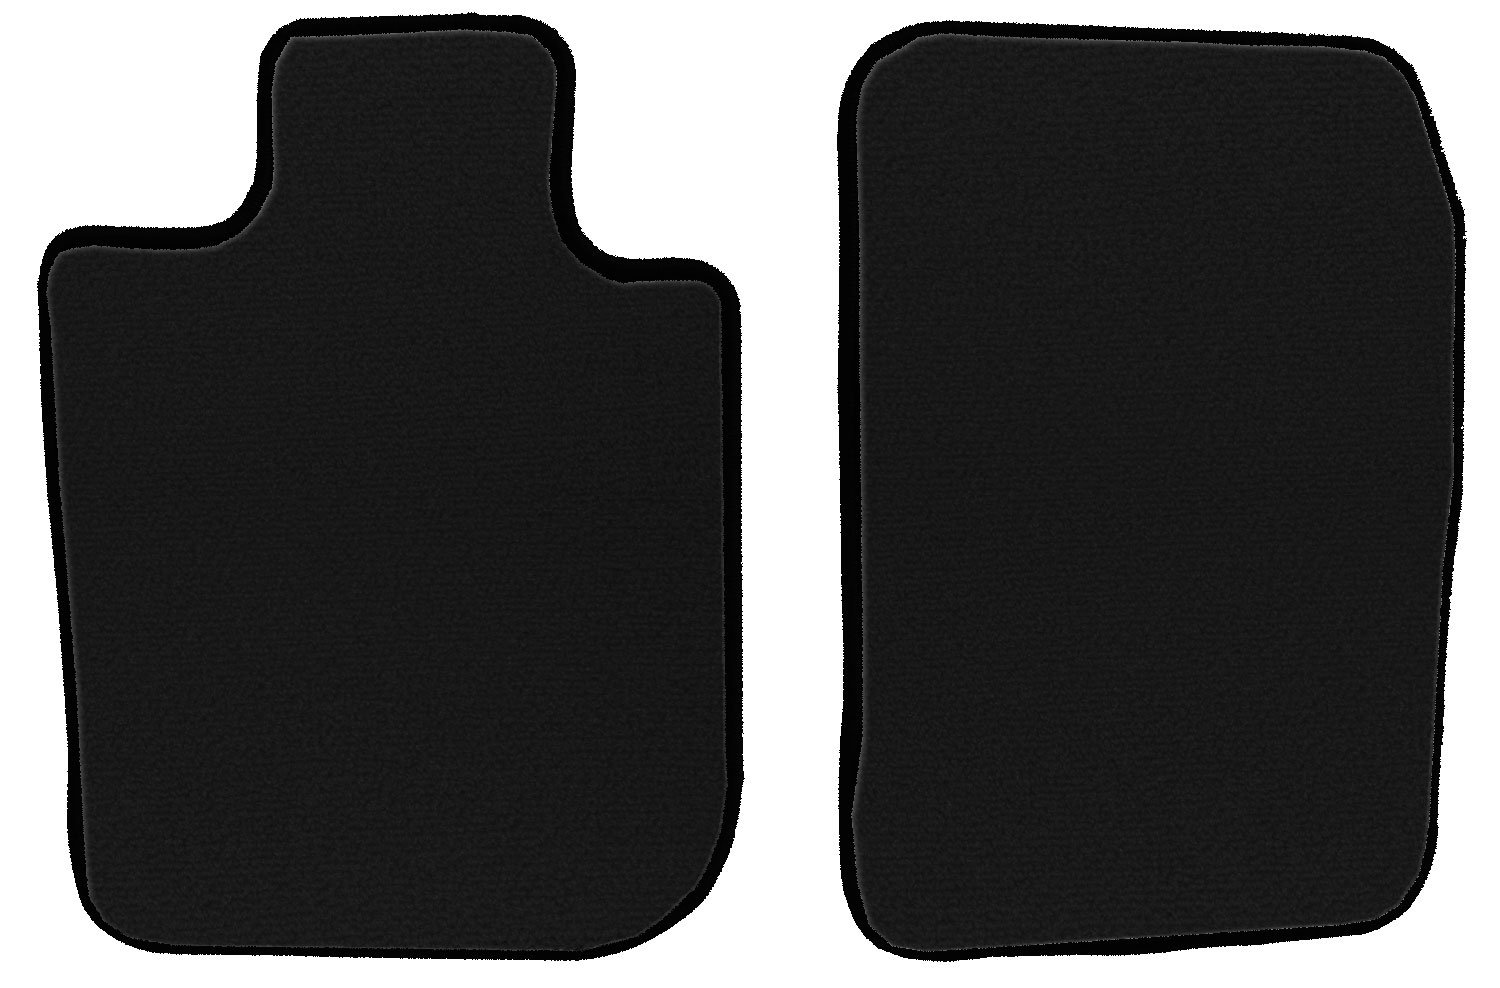 GGBAILEY D51451-F1A-BK-LP Custom Fit Car Mats for 2017 2018 2019 Hyundai Elantra Coupe Black Loop Driver /& Passenger Floor